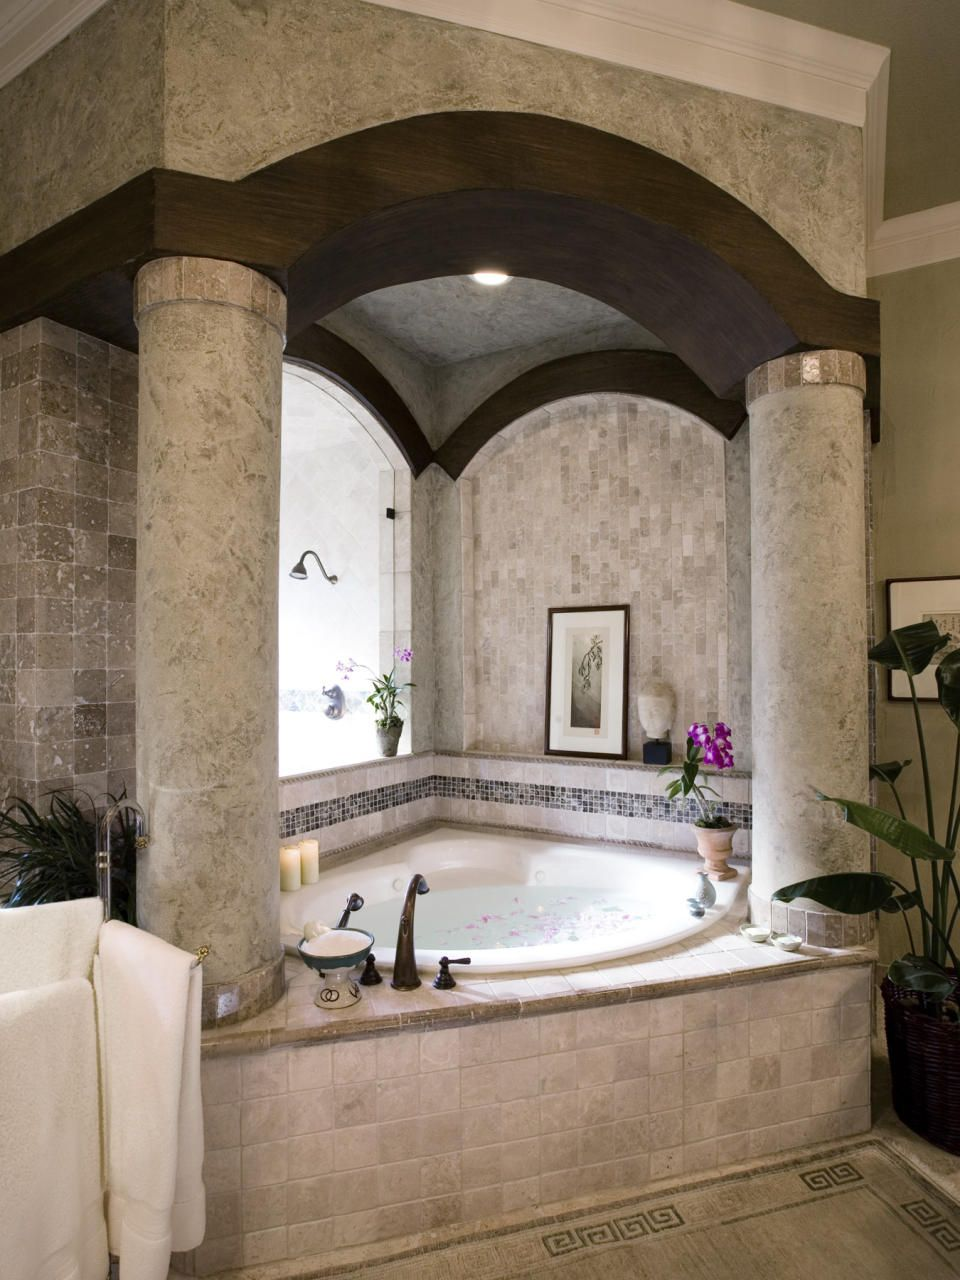 exquisite bathroom design ideas. Bathroom Design  Awesome And Beautiful Classic Corner Bathtub With Elegant Big Round Column Chic Wood Beam Small Luxury Bathrooms Ideas Now there s a tub and enclosure Give it Tuscan Mediterranean